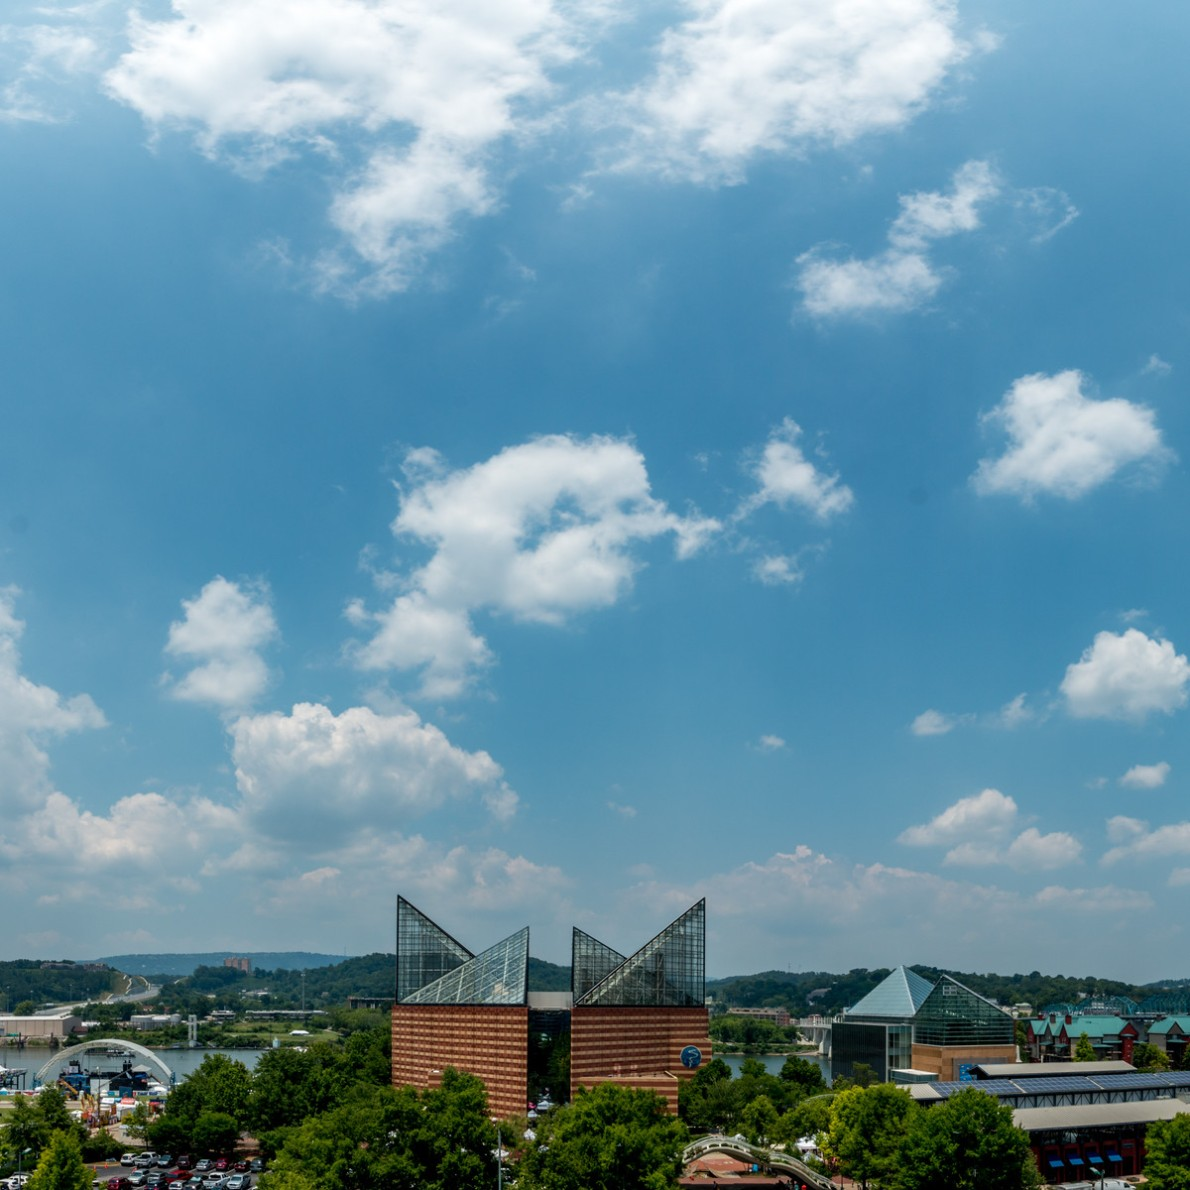 Photograph of Chattanooga aquarium and our venue by Andrew Rodgers